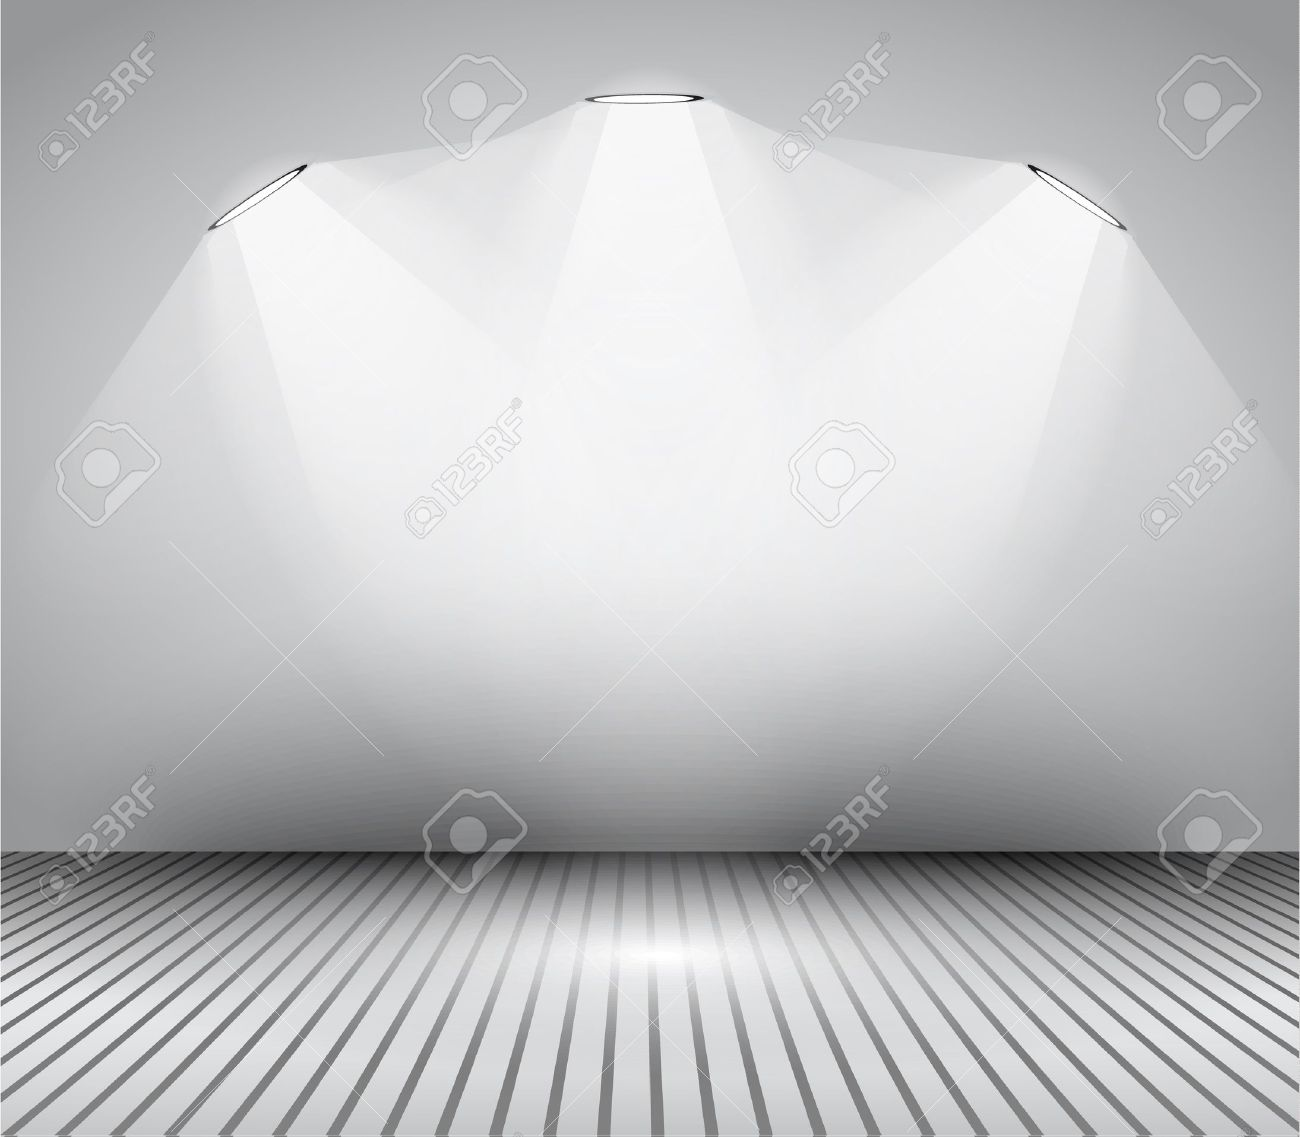 Modern interior art gallery frame design with spotlights. Shelf, spotlight with directional light, delicate shadows and clean background. Stock Vector - 21316472